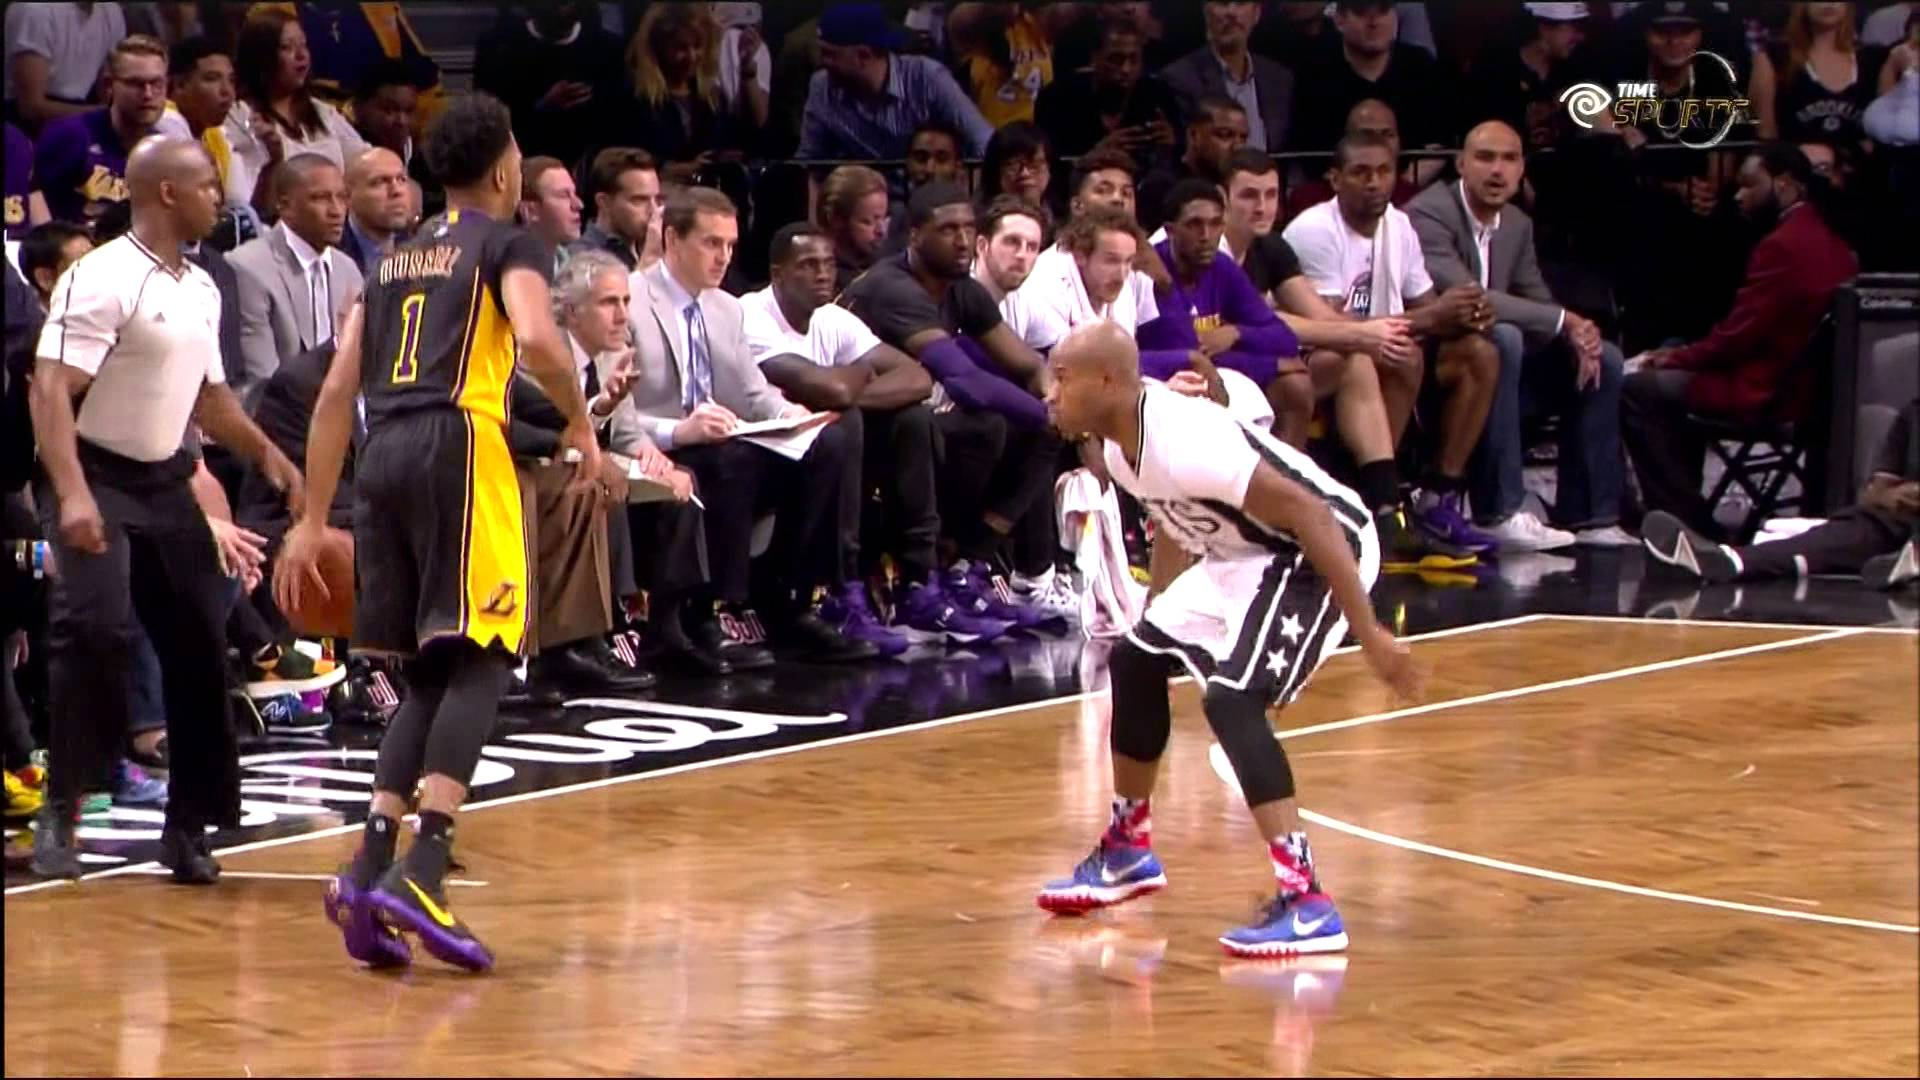 D'Angelo Russell drops Jarret Jack with a nice crossover